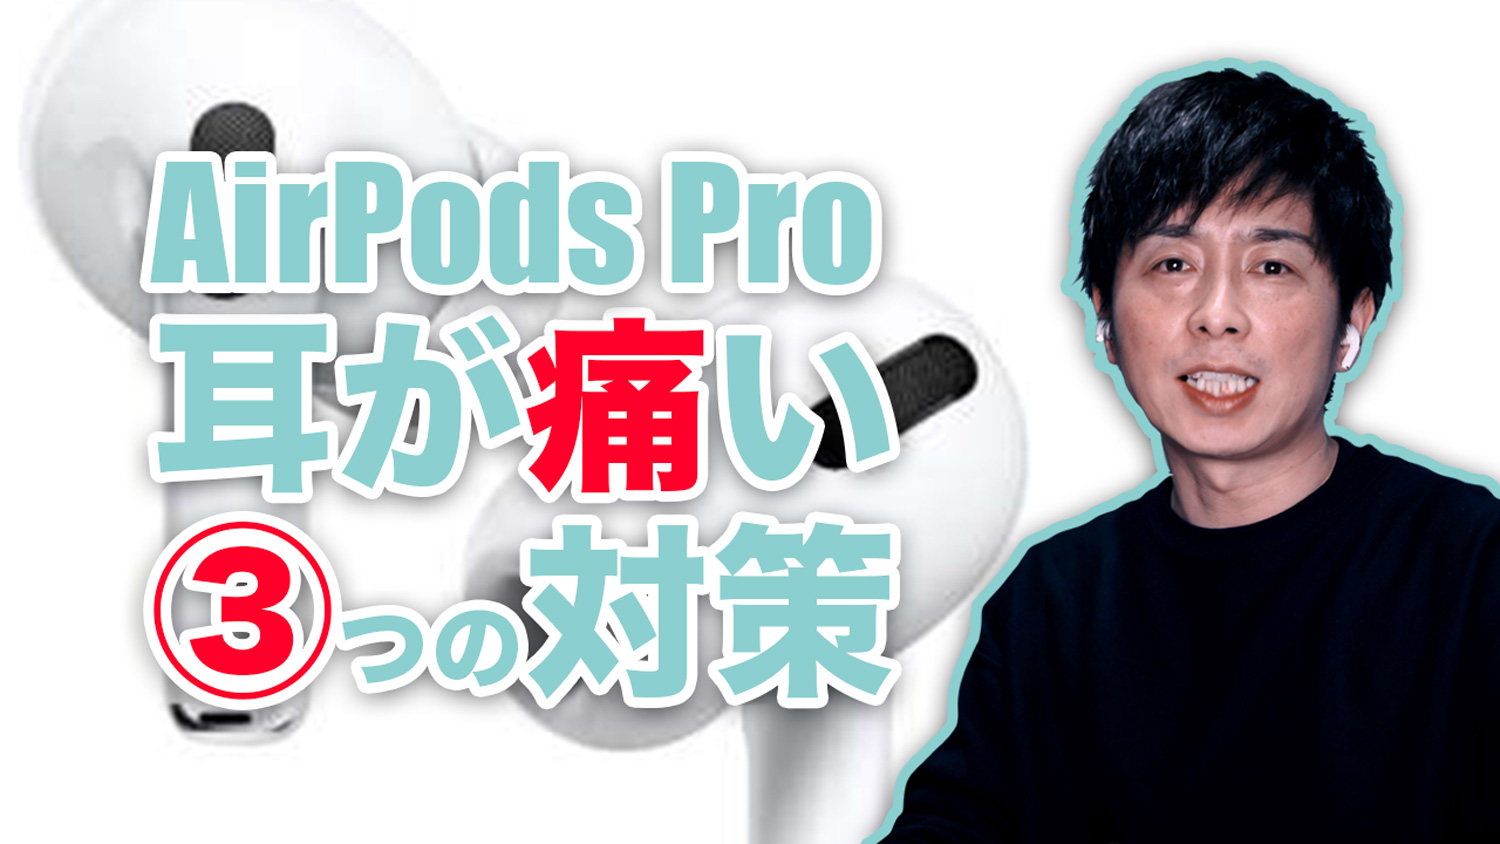 Pro 痛い Airpods 耳